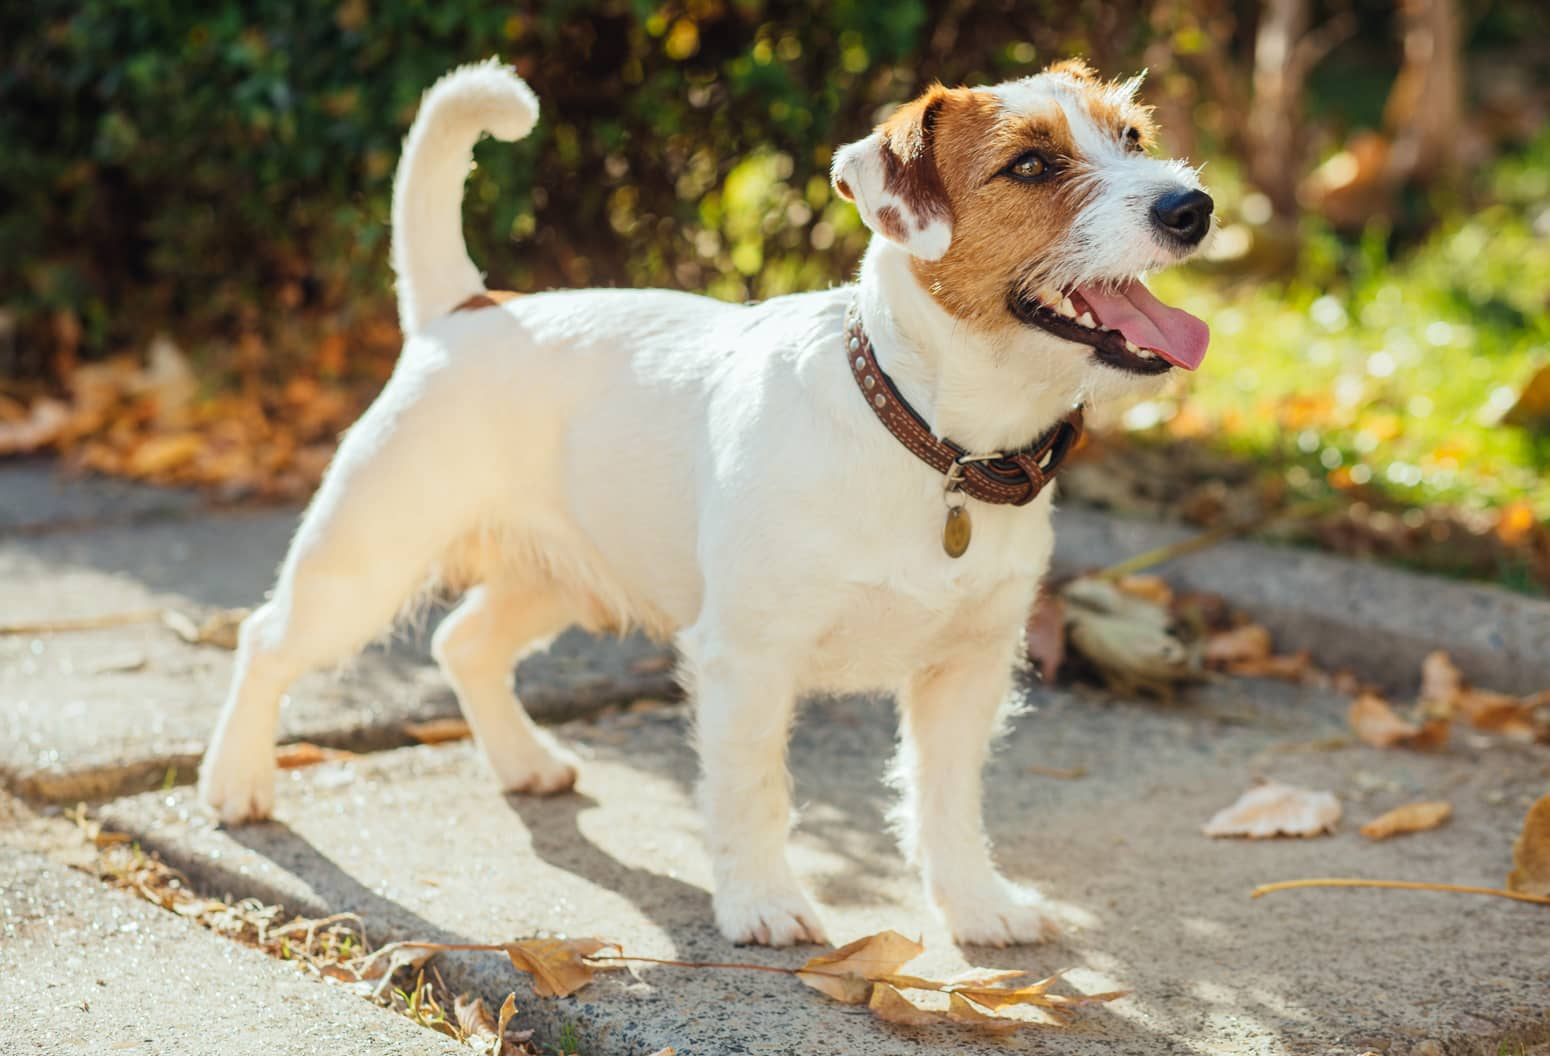 Portrait of trained Jack Russell puppy standing outdoor looking aside stick out tonique and smiling waiting for command from owner. Cute small domestic dog, good friend for a family and kids.